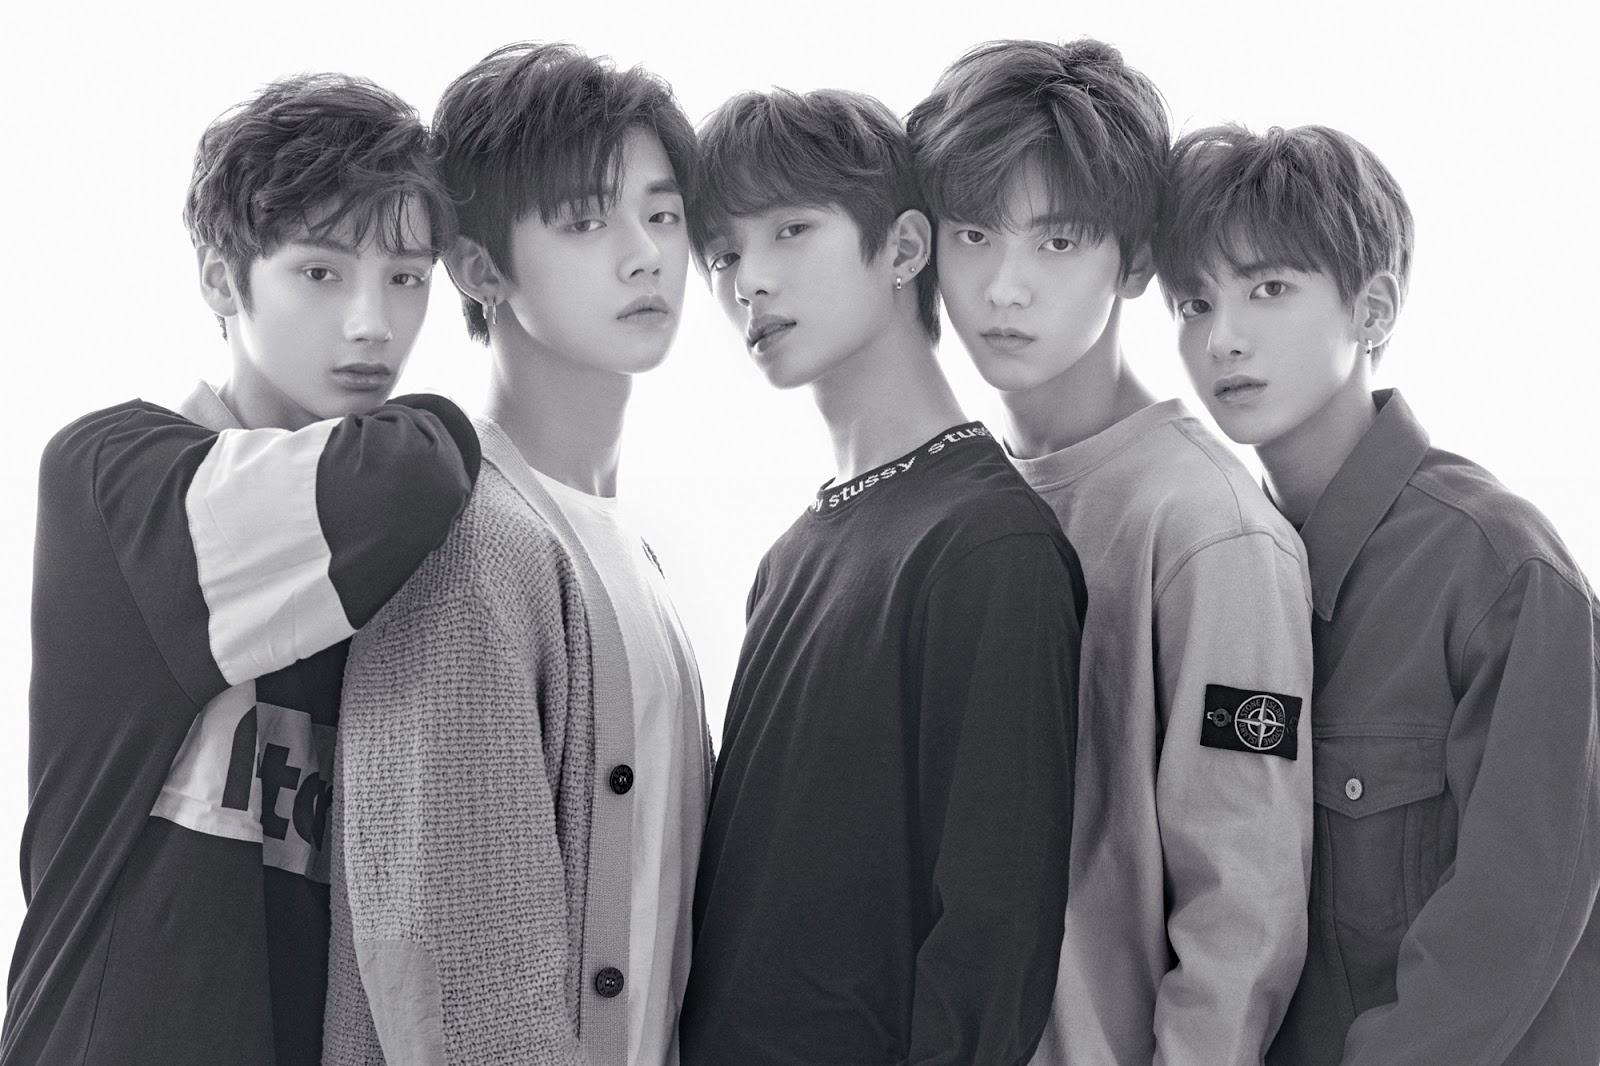 txt debut march 1